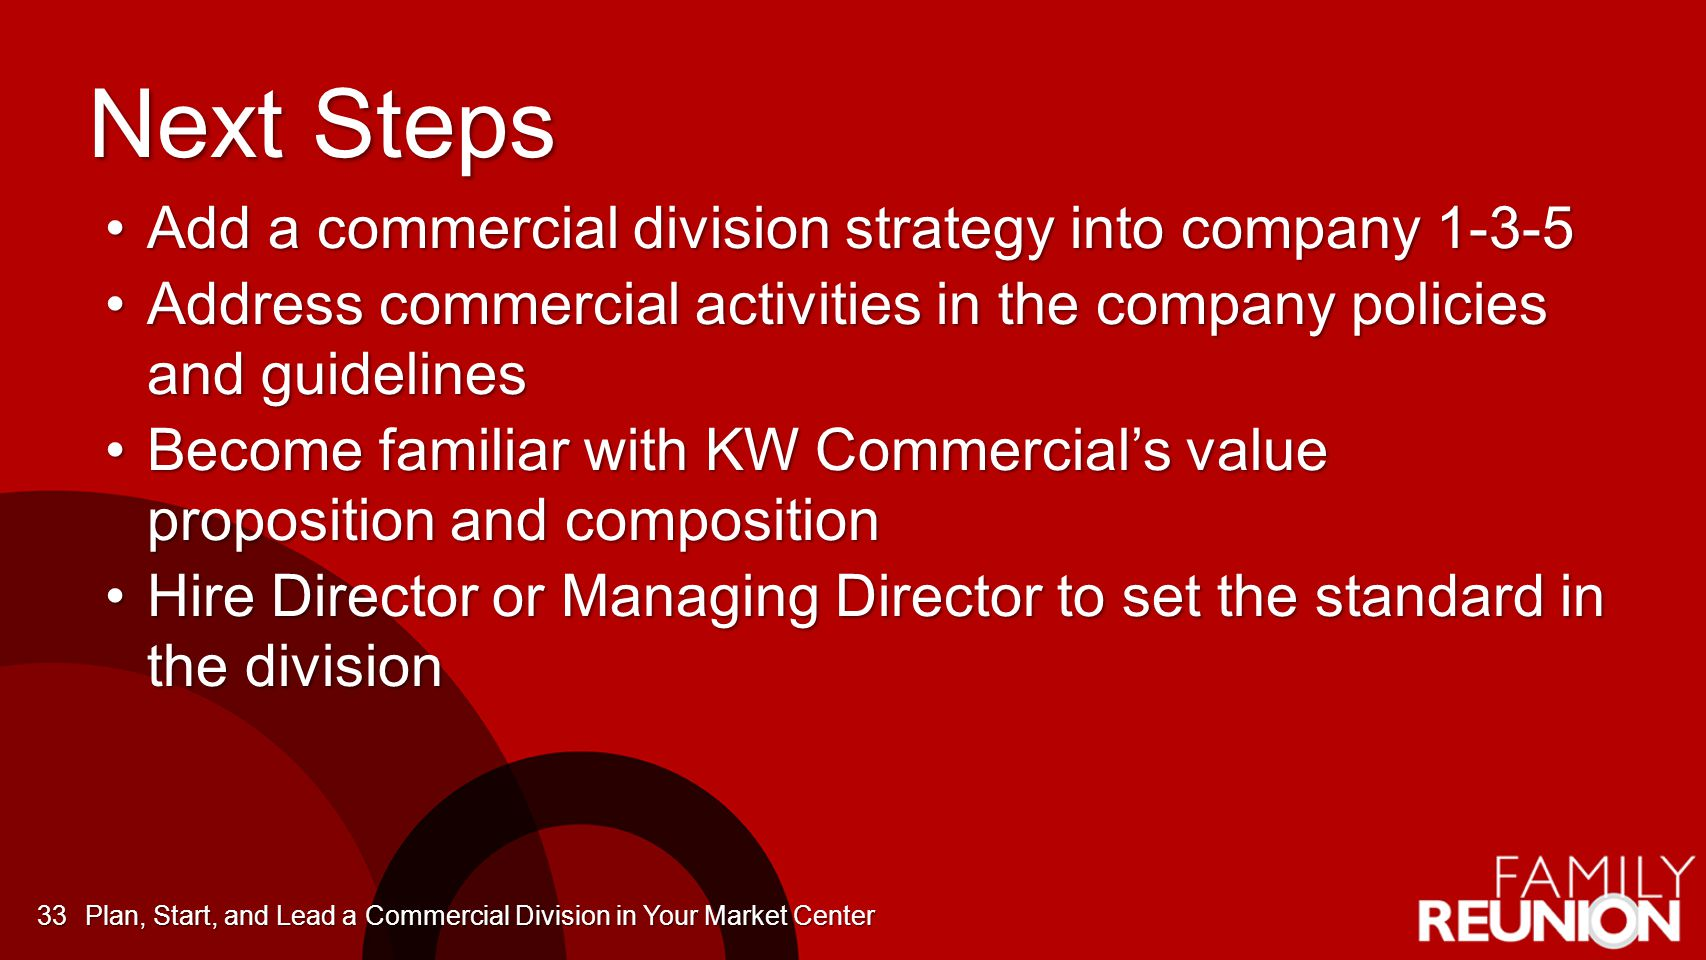 Next Steps Add a commercial division strategy into company 1-3-5Add a commercial division strategy into company 1-3-5 Address commercial activities in